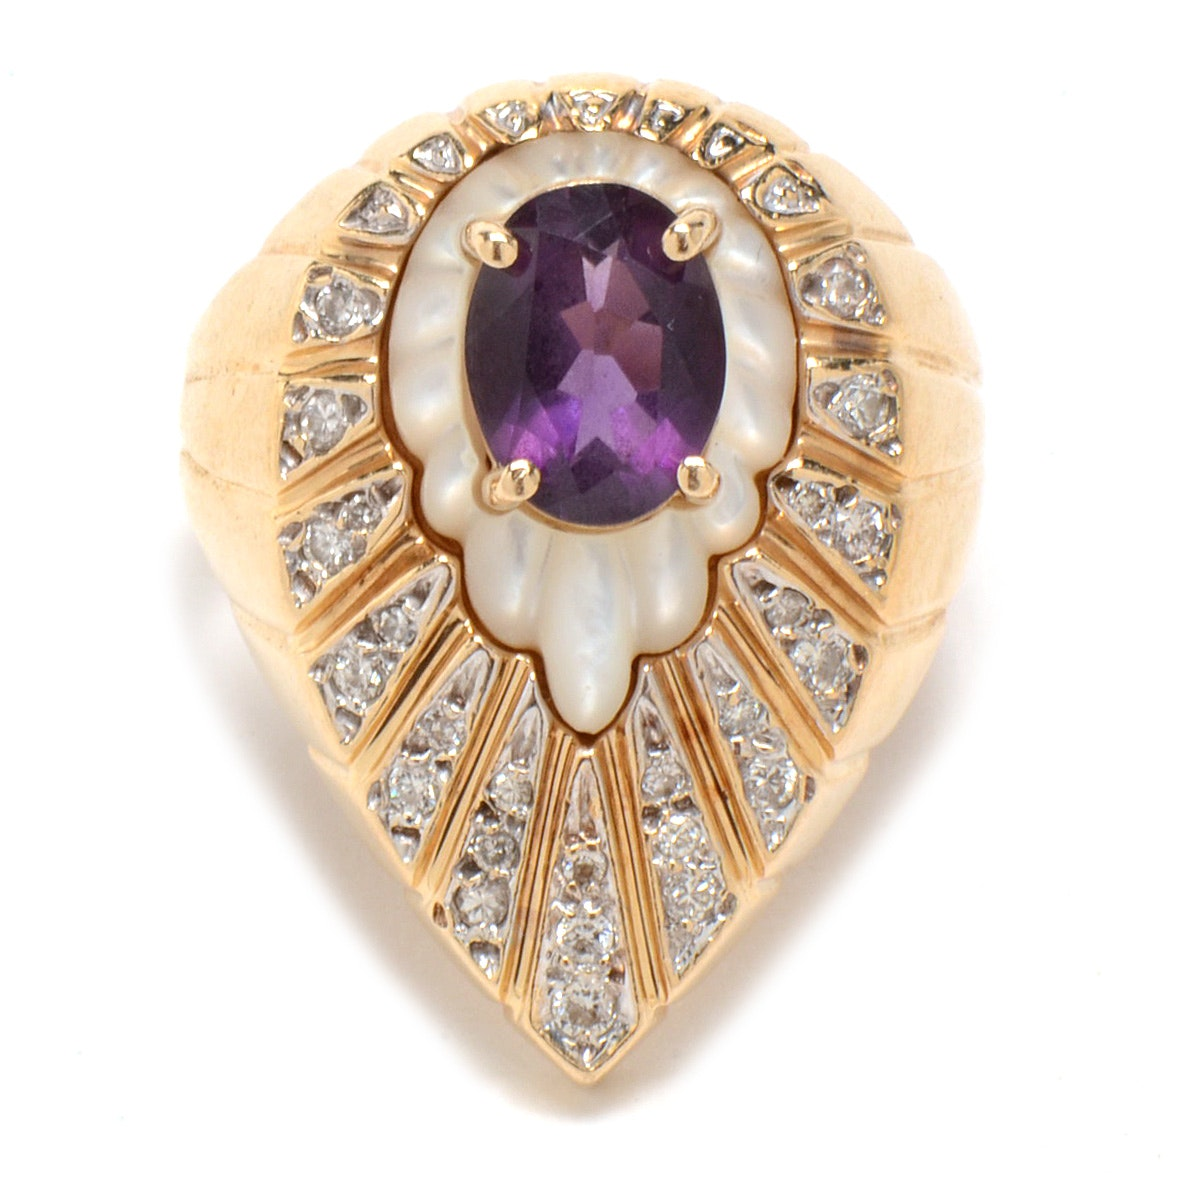 Erté 14K Yellow Gold Amethyst, Mother of Pearl and Diamond Ring